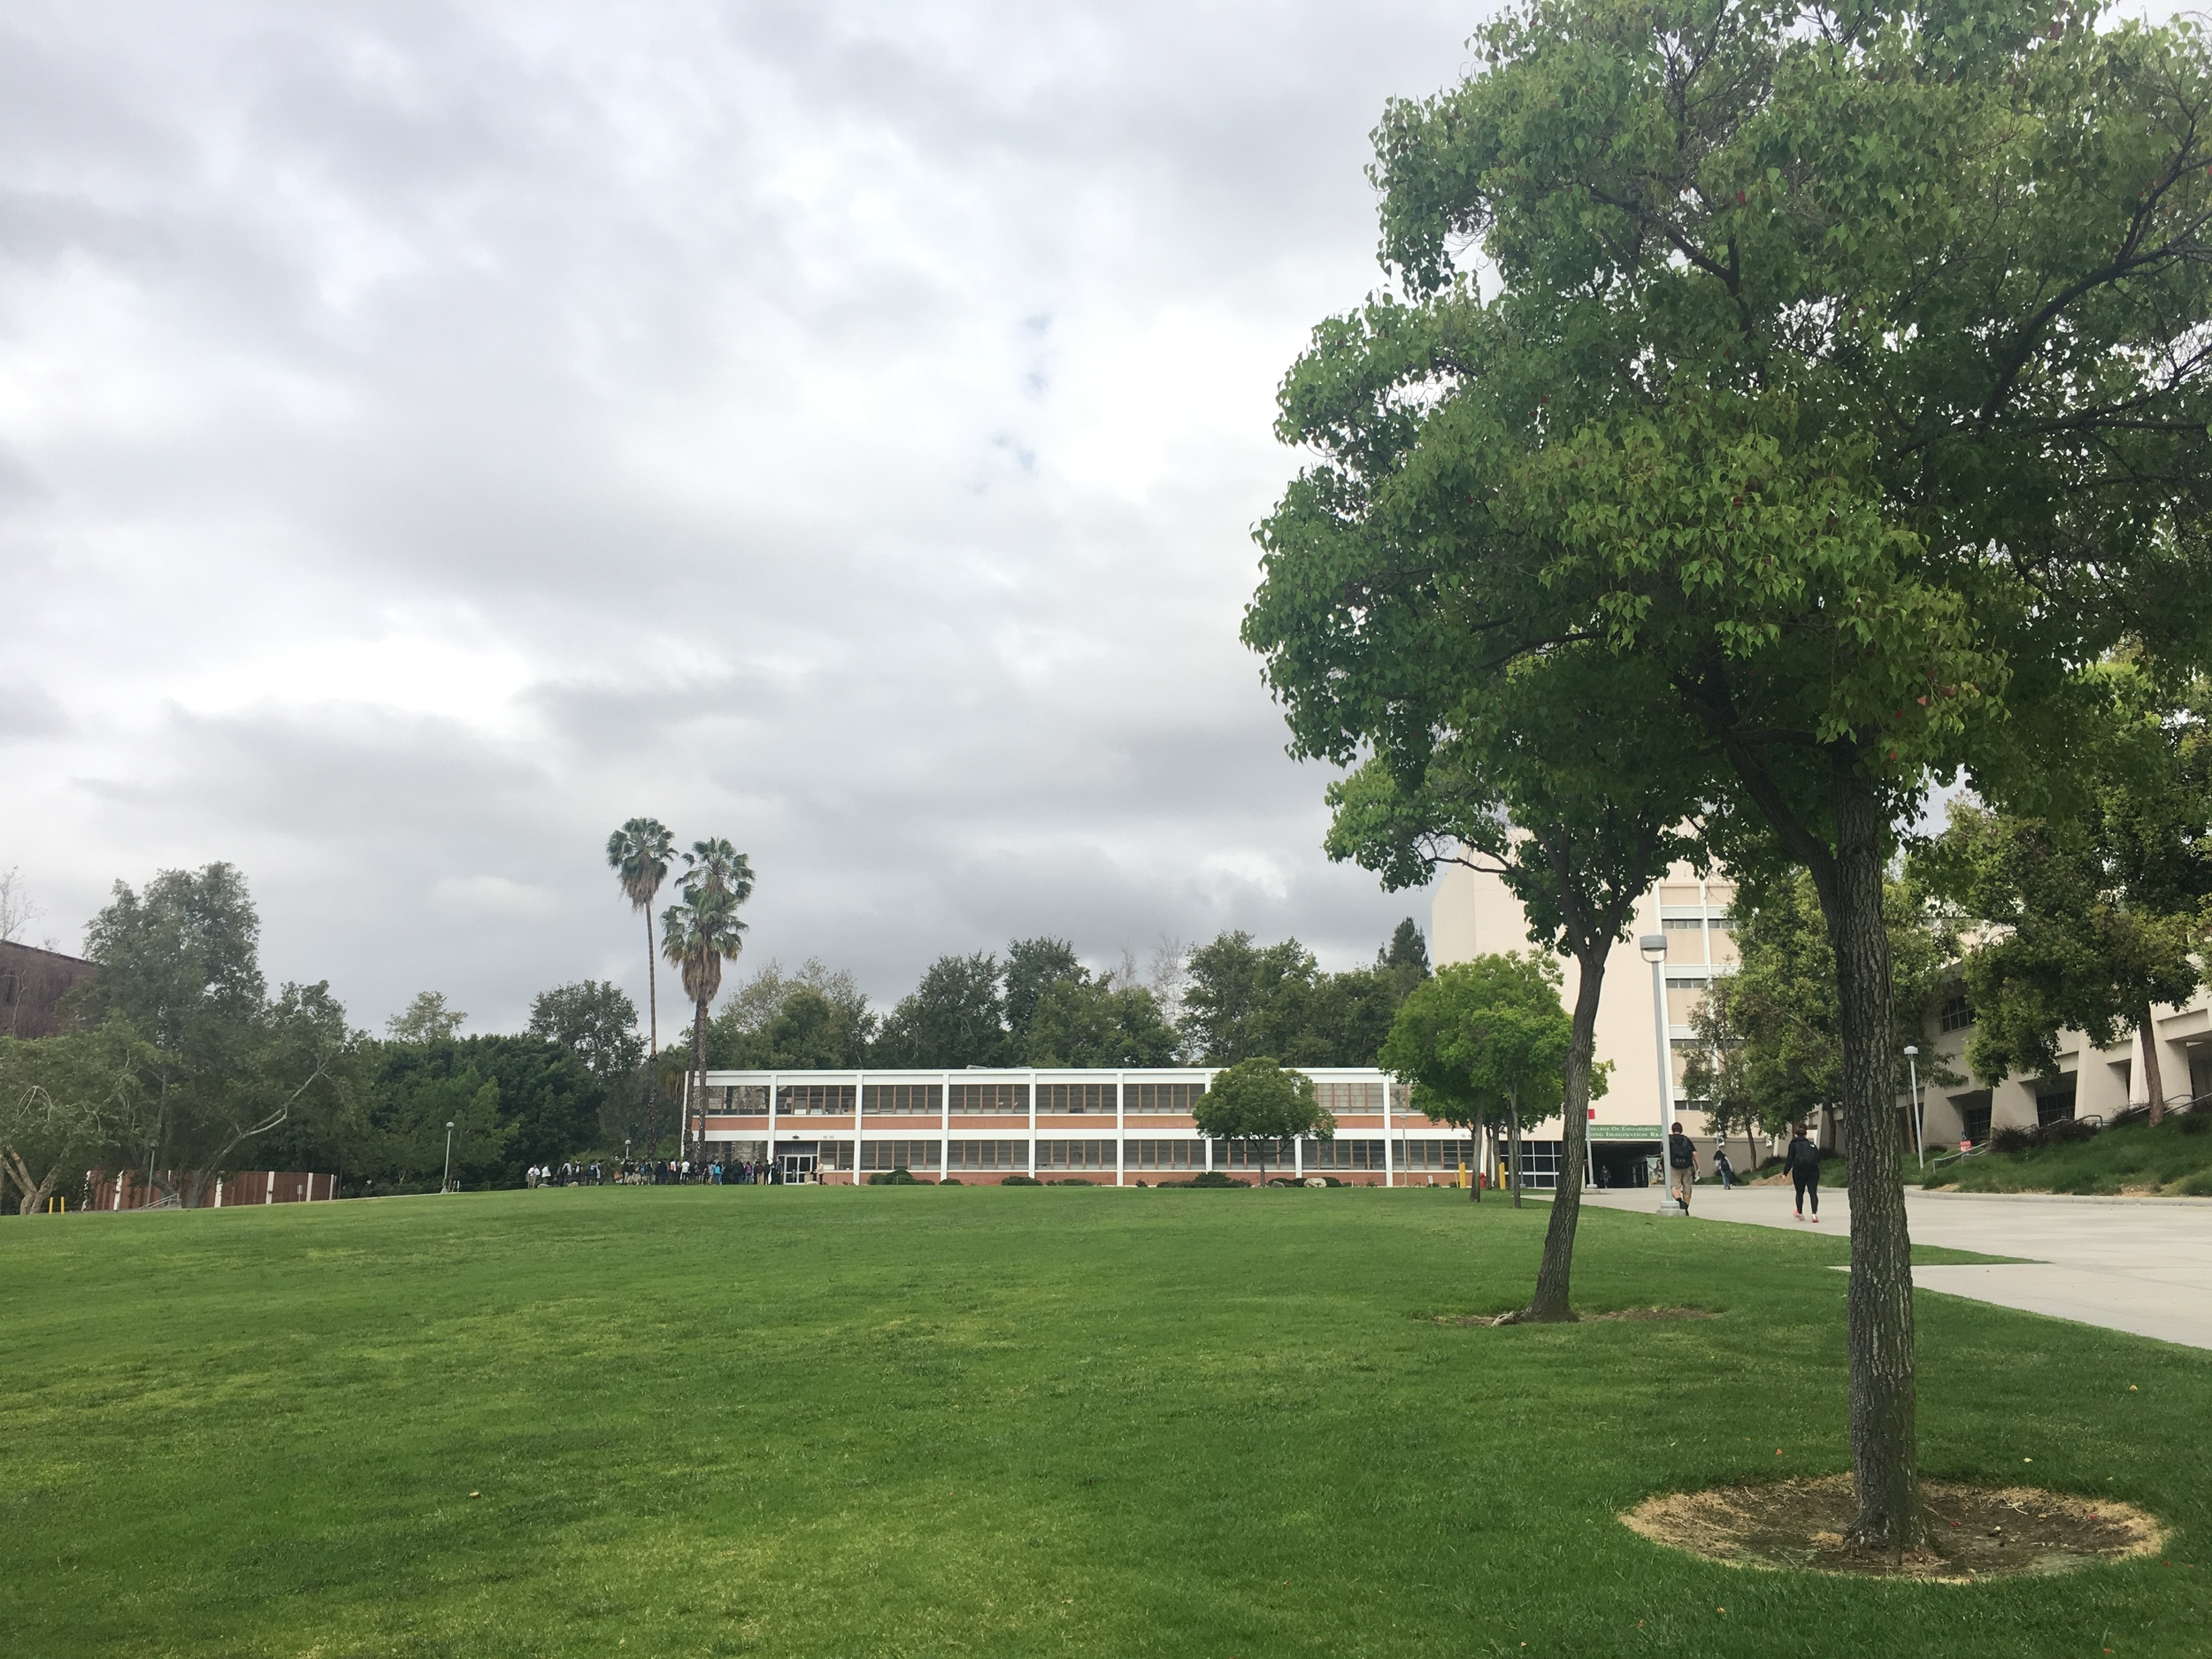 The engineering building